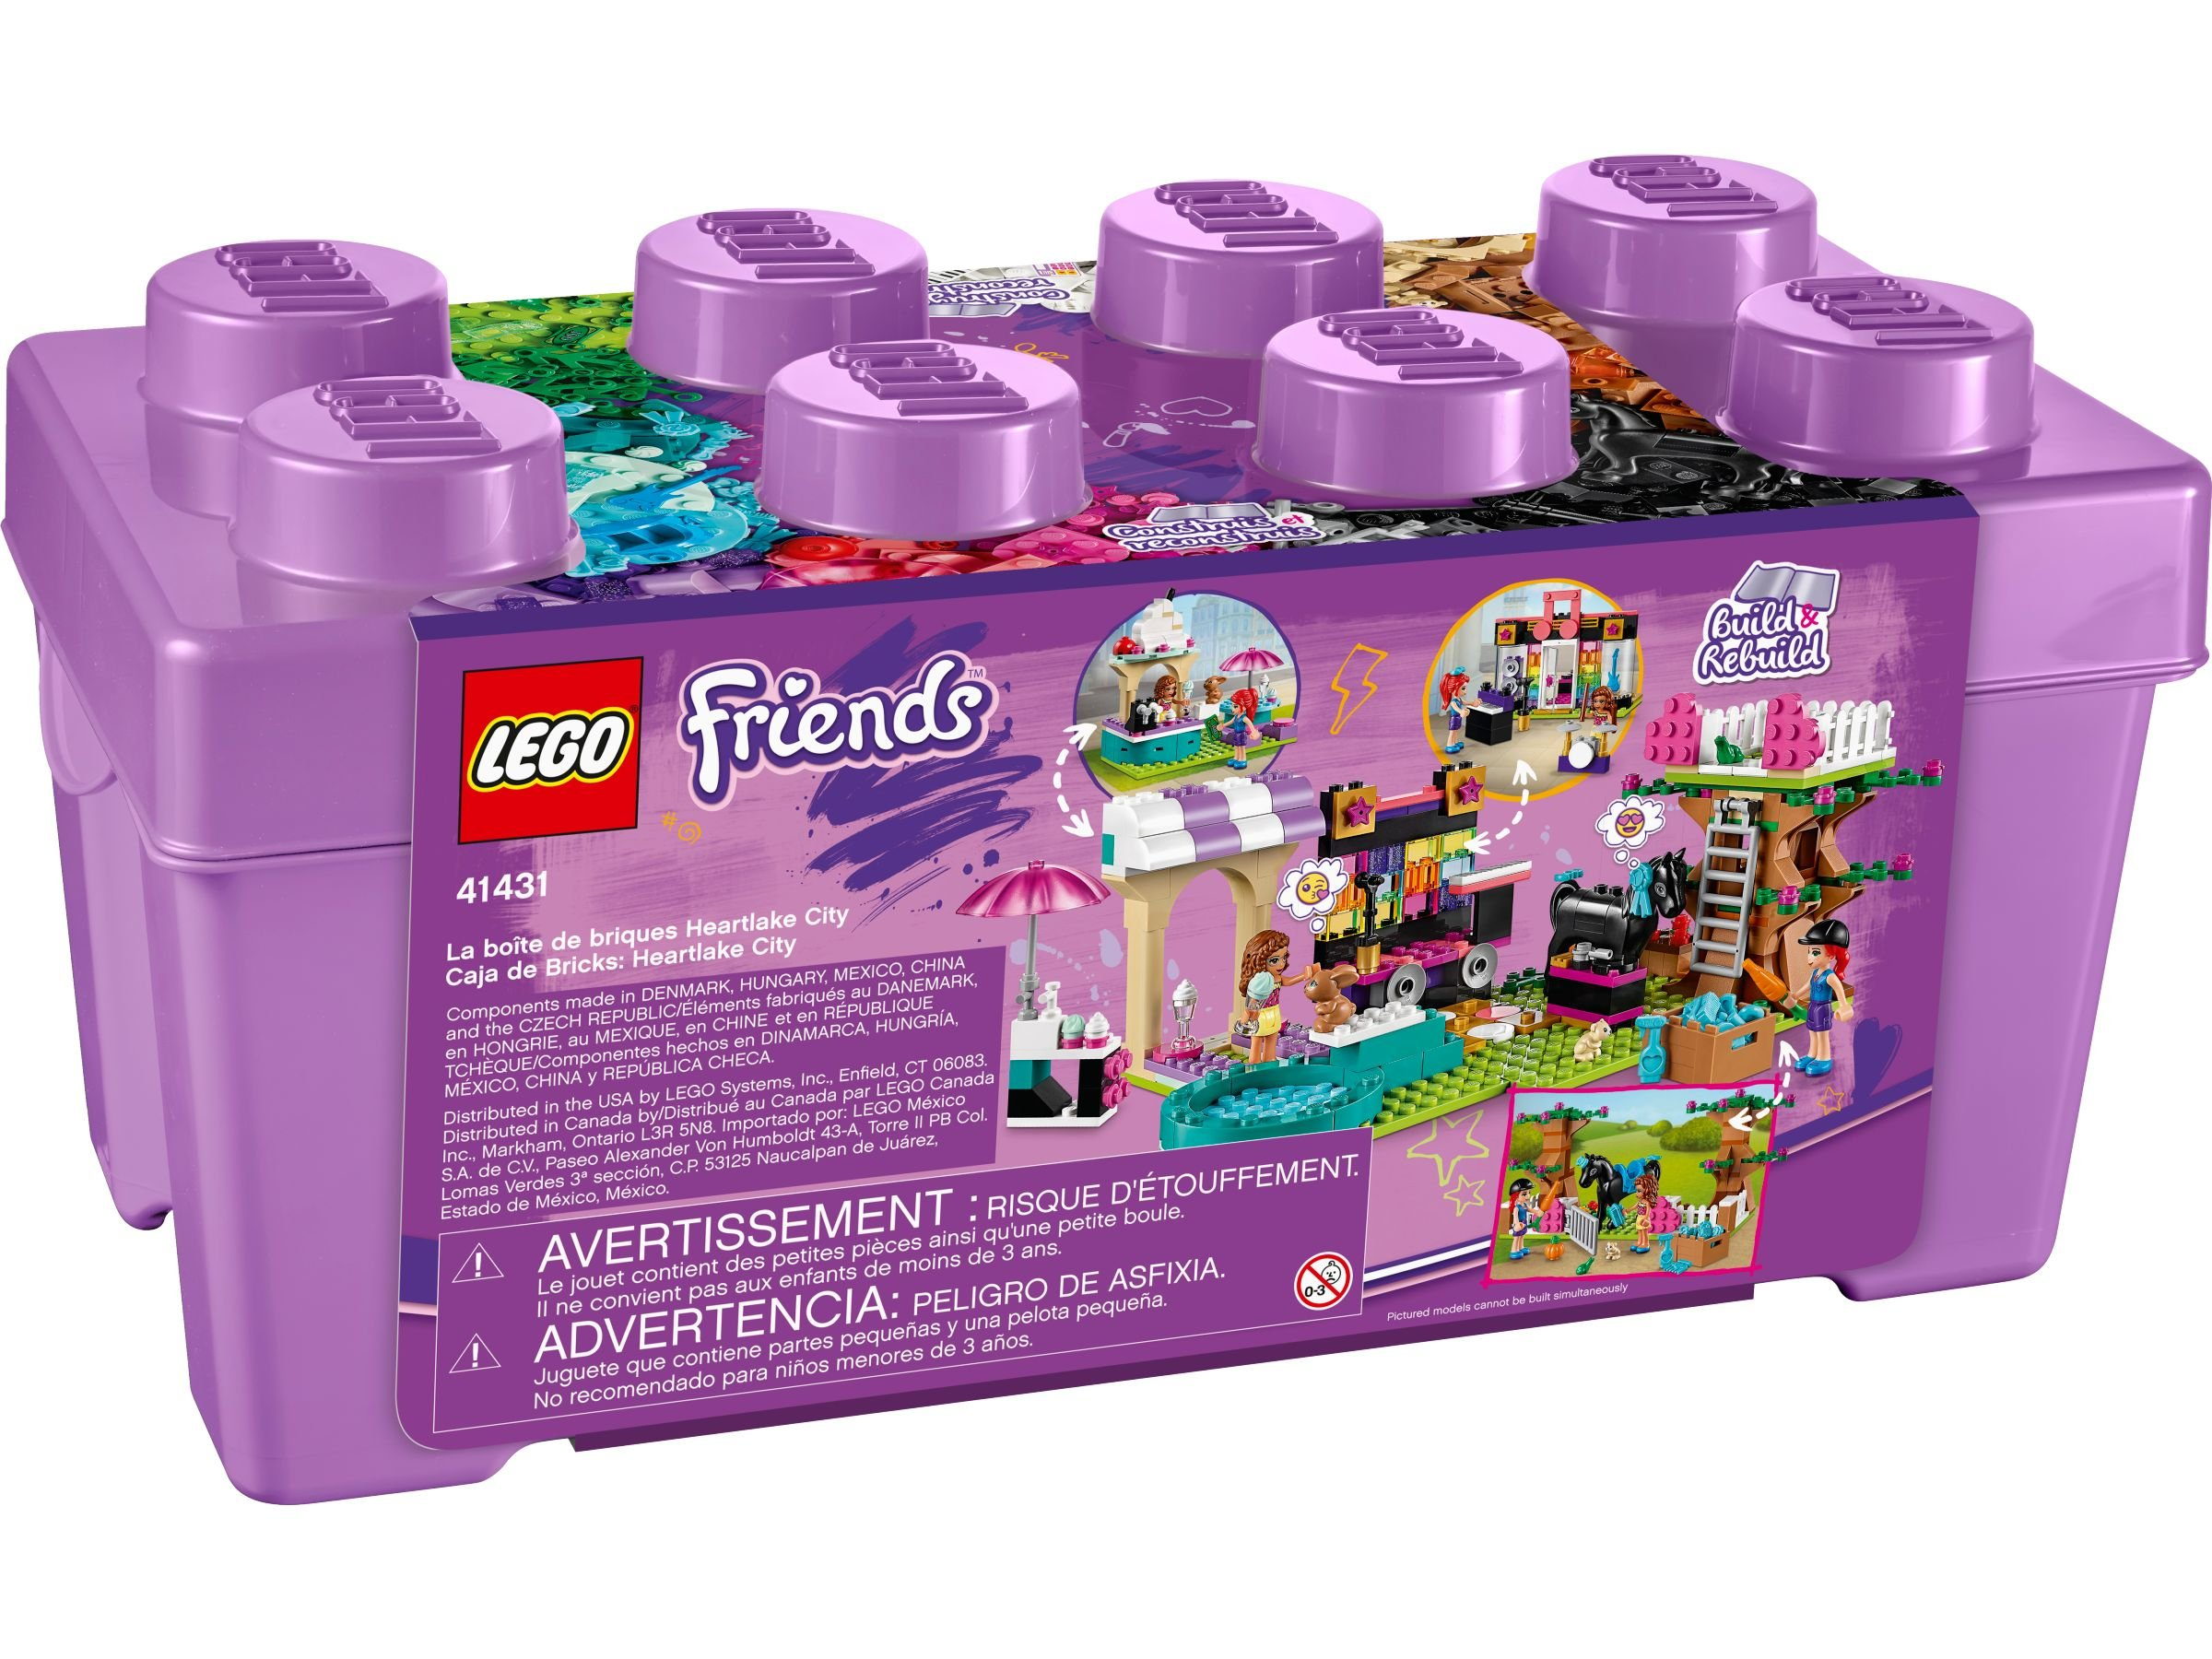 LEGO Friends 41431 Heartlake City Steinebox LEGO_41431_alt4.jpg